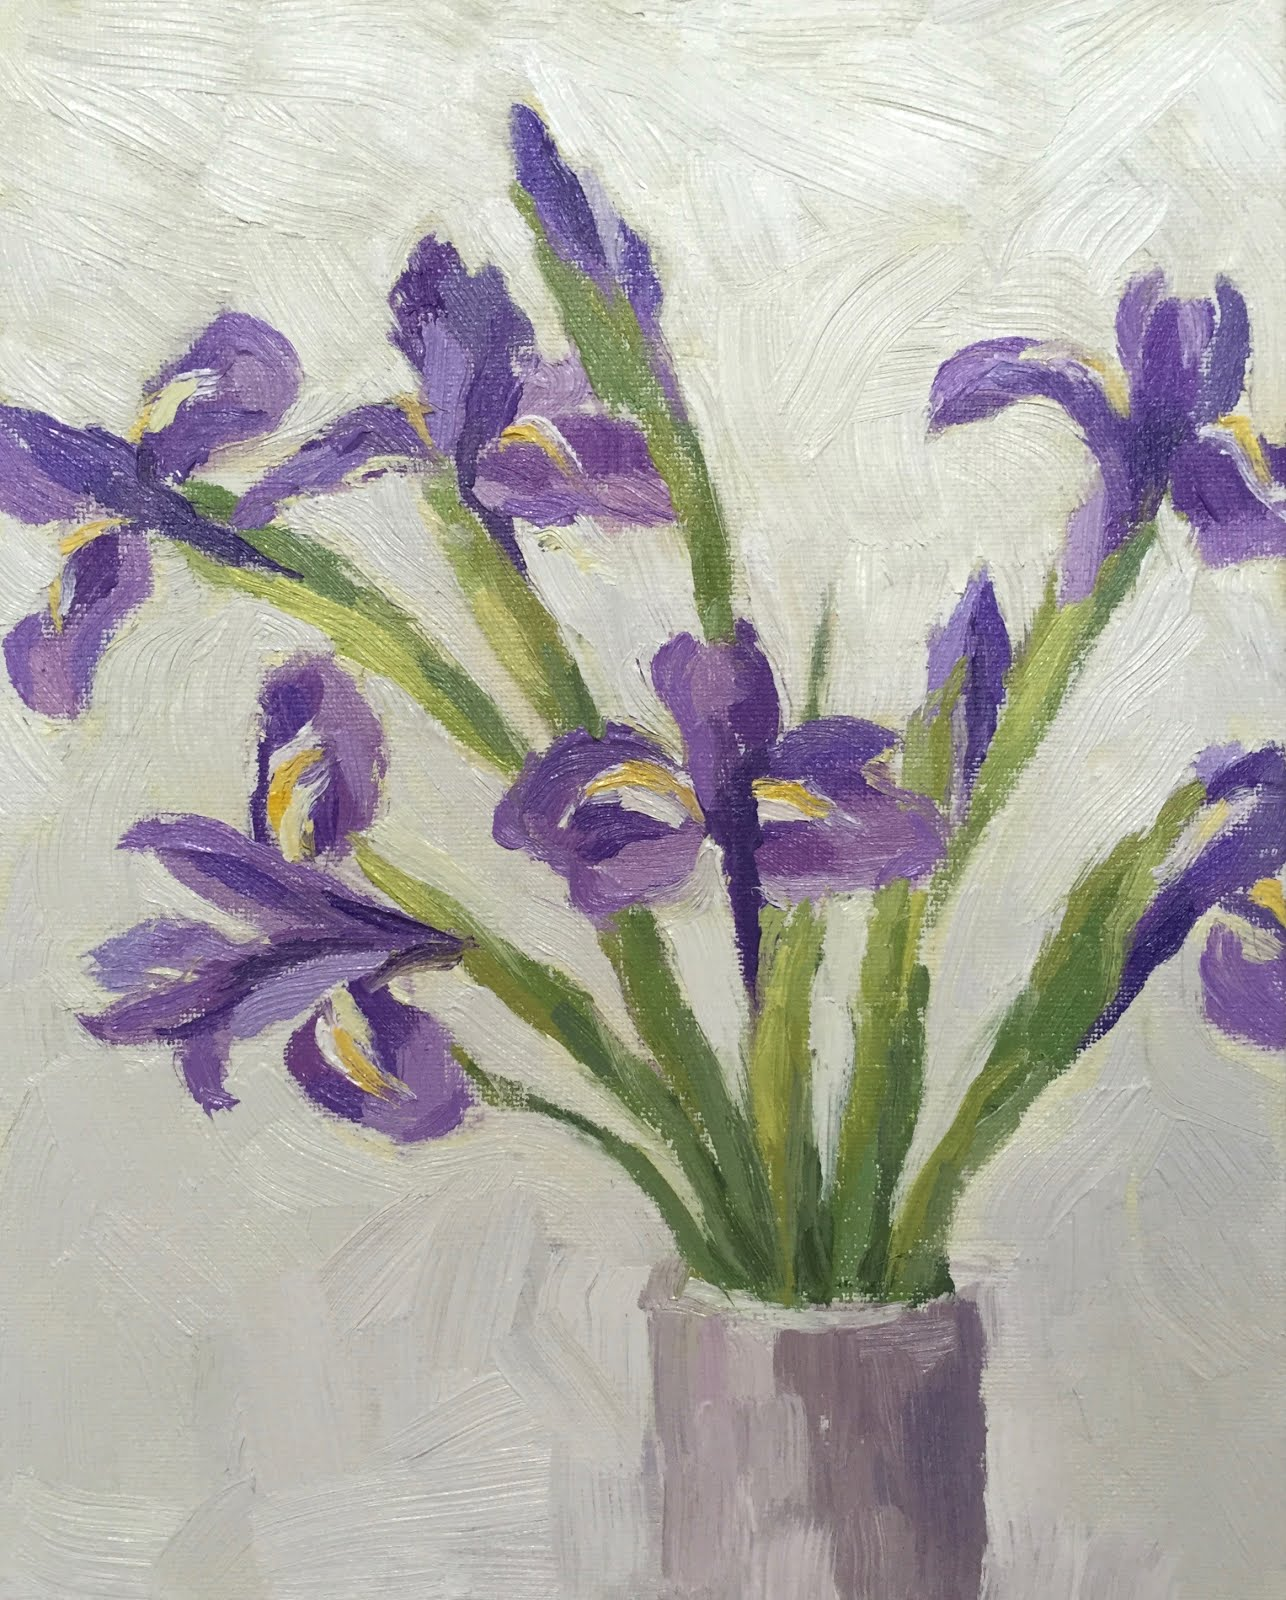 Clare bowen artist daily painting 20 iris flowers 10x8 these flowers took me ages so much so matte my dog asked for food and attention while i was taking the photo of the finished painting see pic below izmirmasajfo